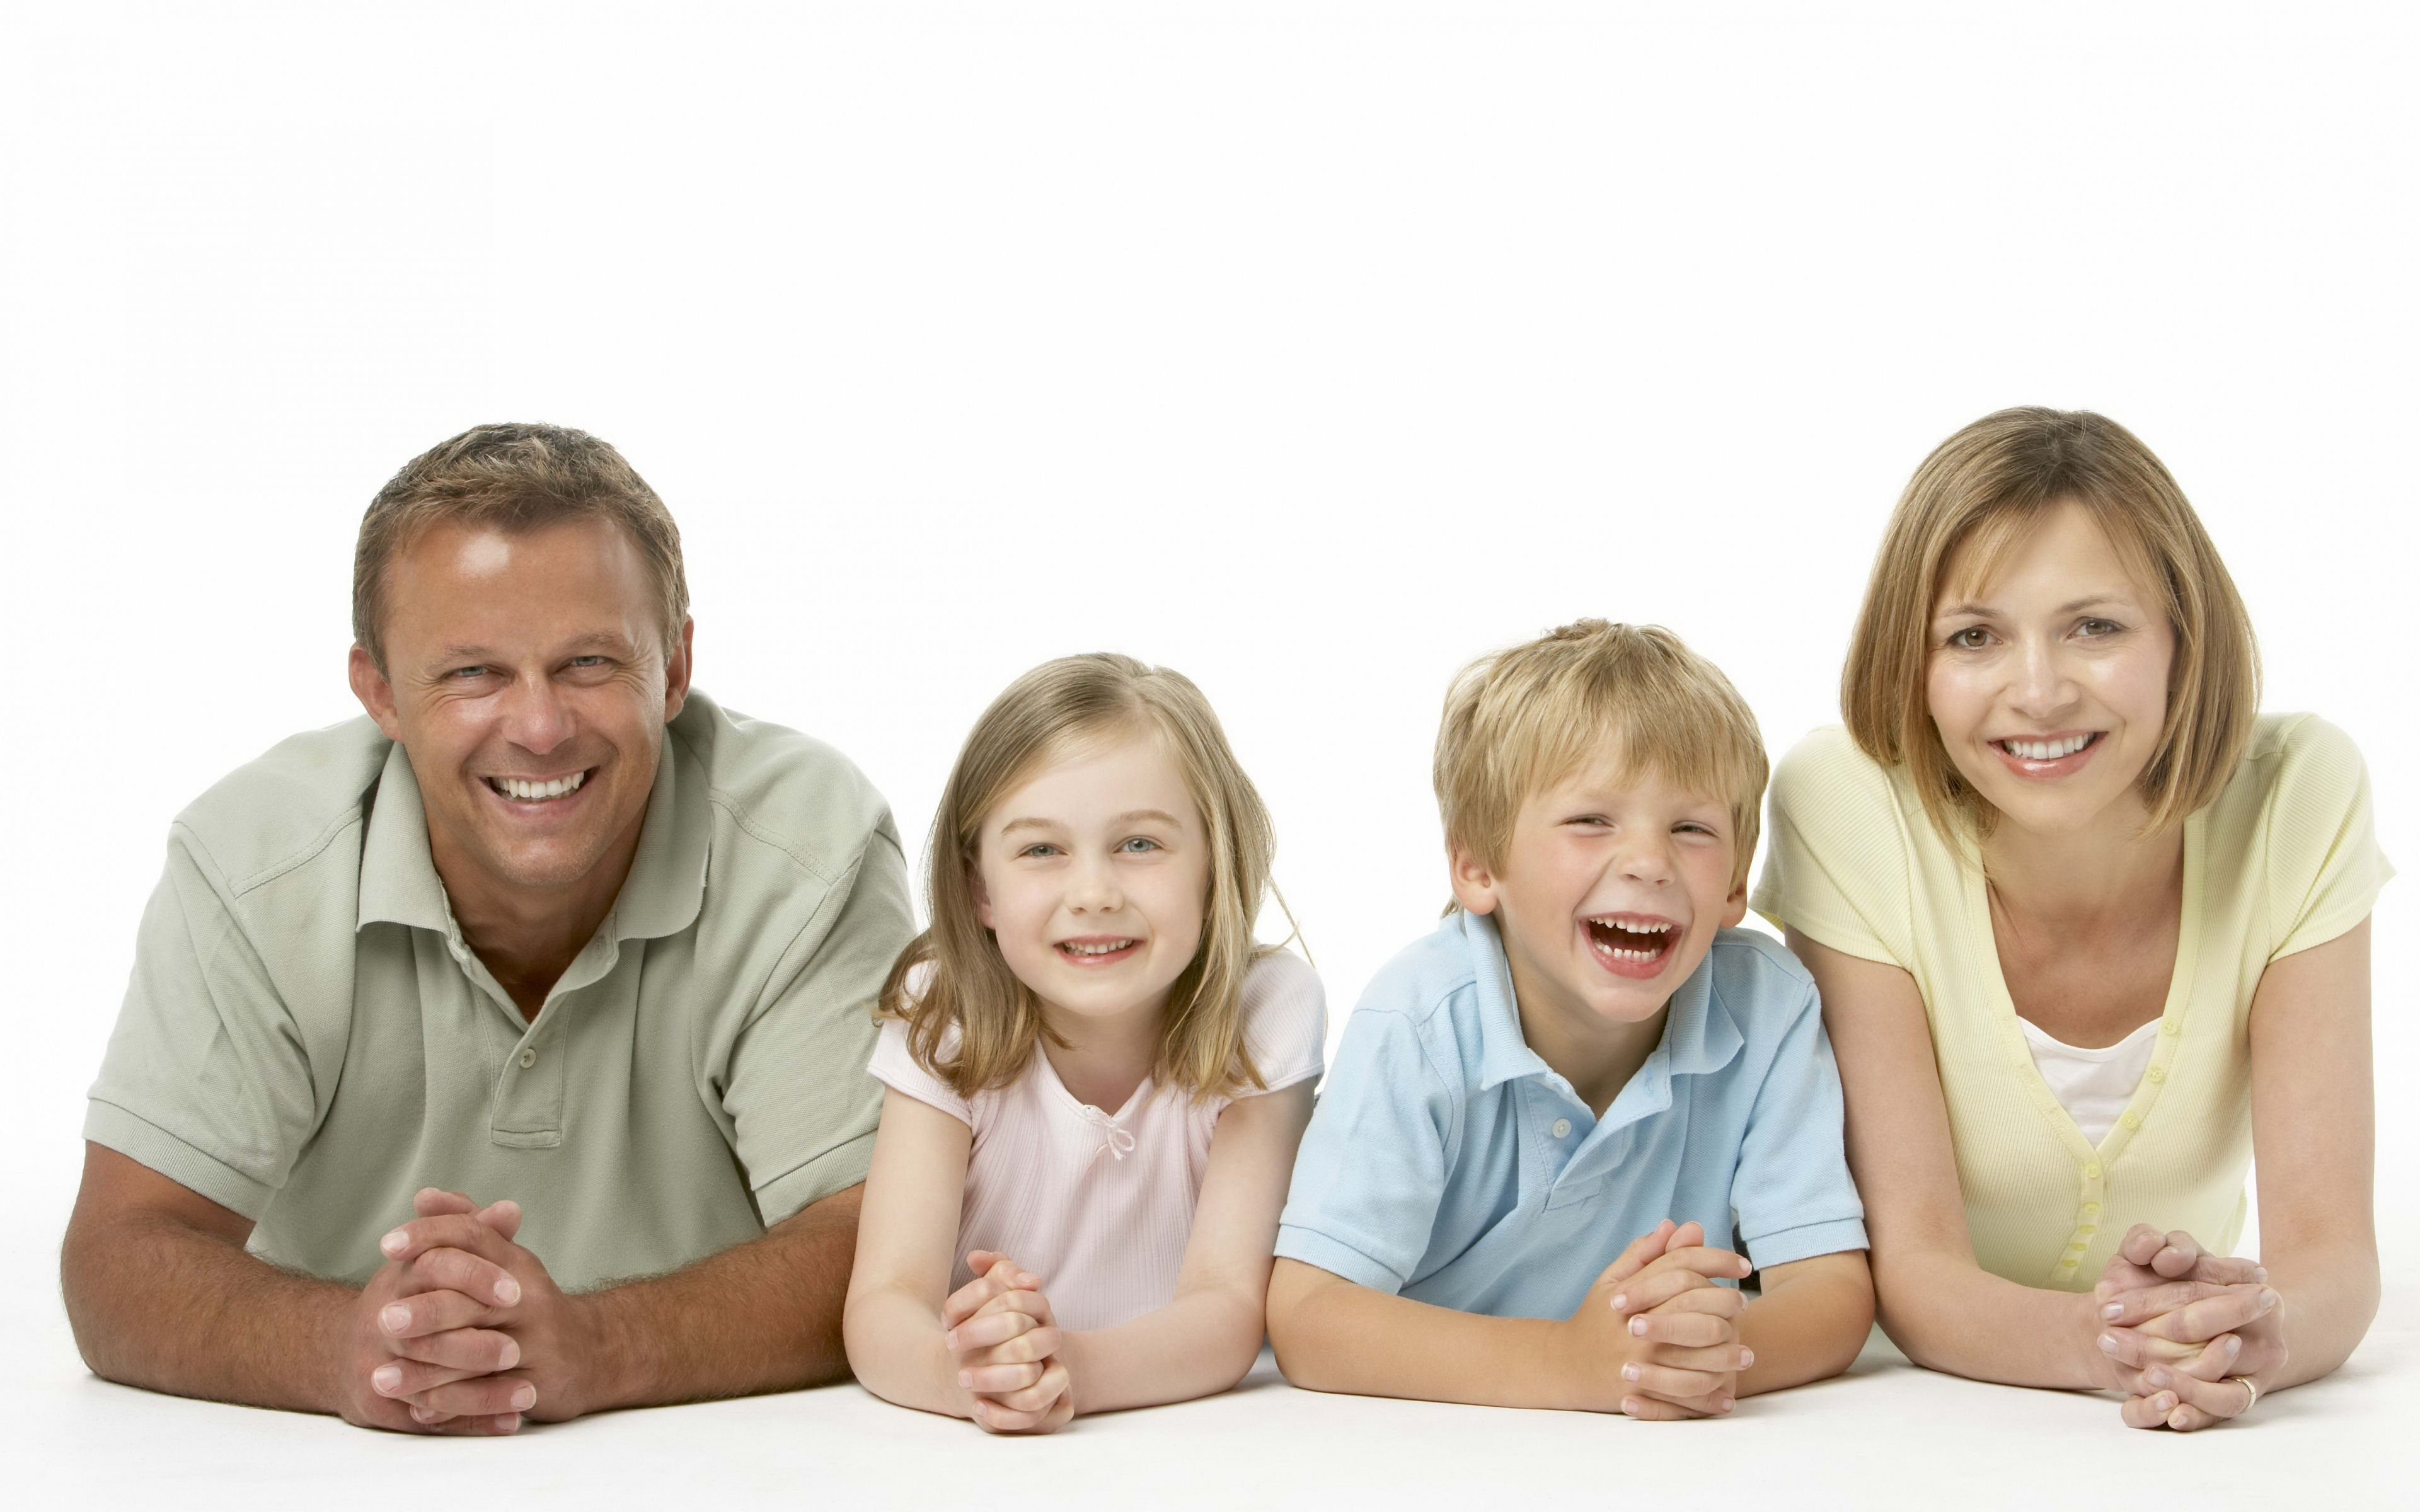 Happy Family Wallpaper Album X Wallpaper Download Life Insurance Policy Universal Life Insurance National Life Insurance